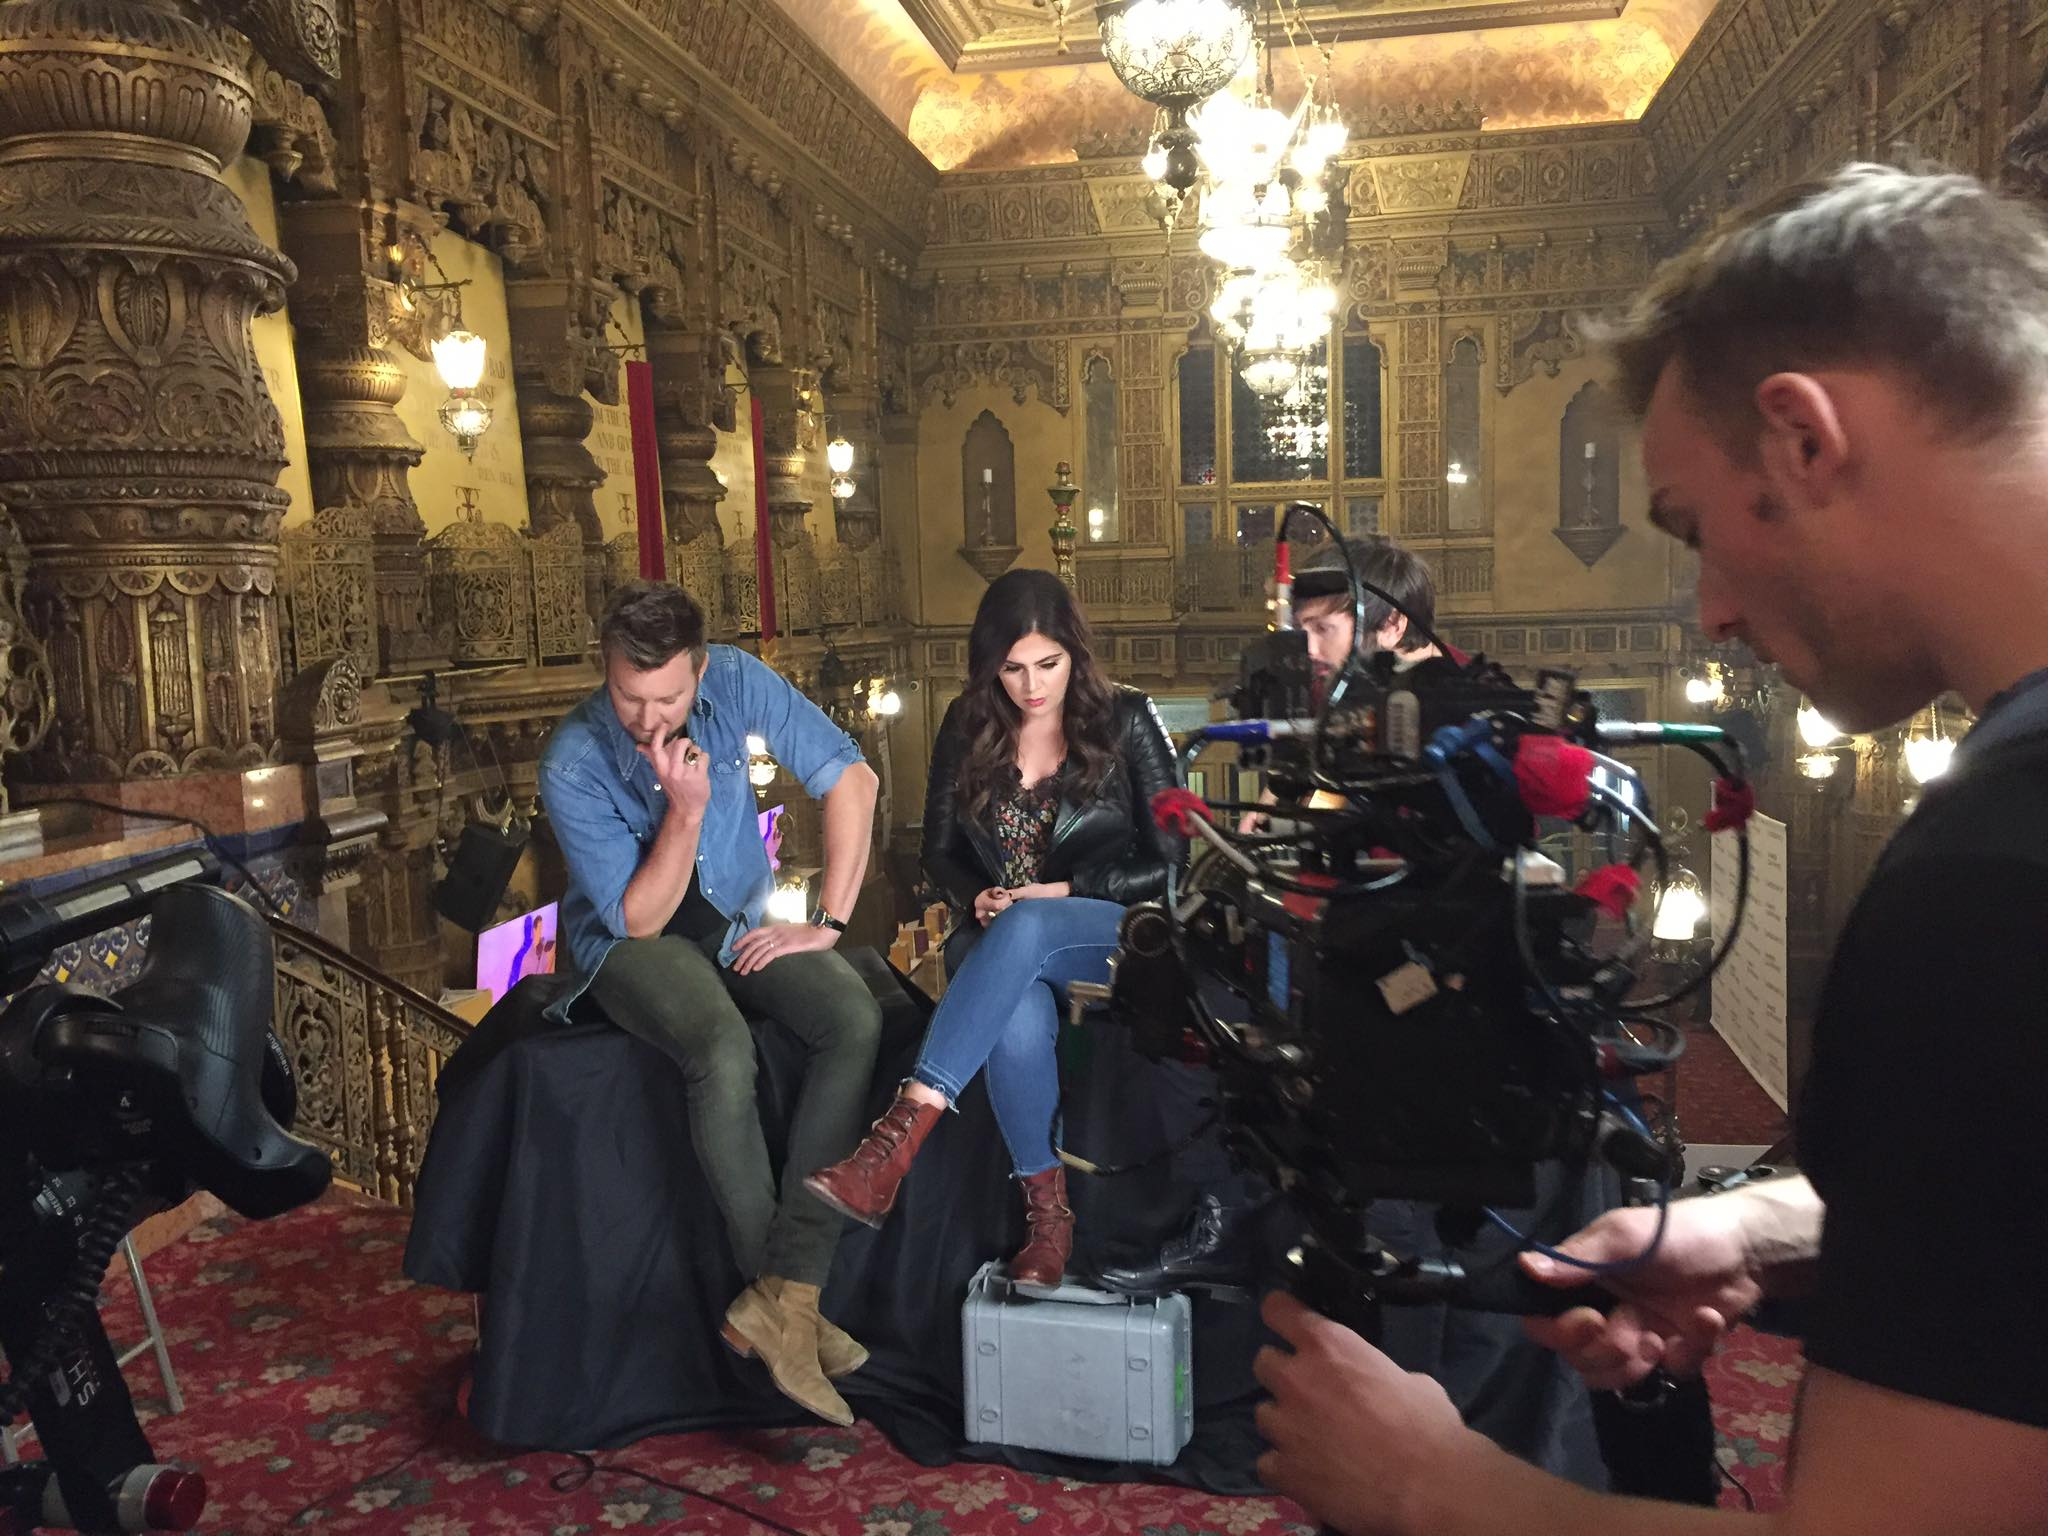 Lady Antebellum's interview took place in the lobby of United Palace.